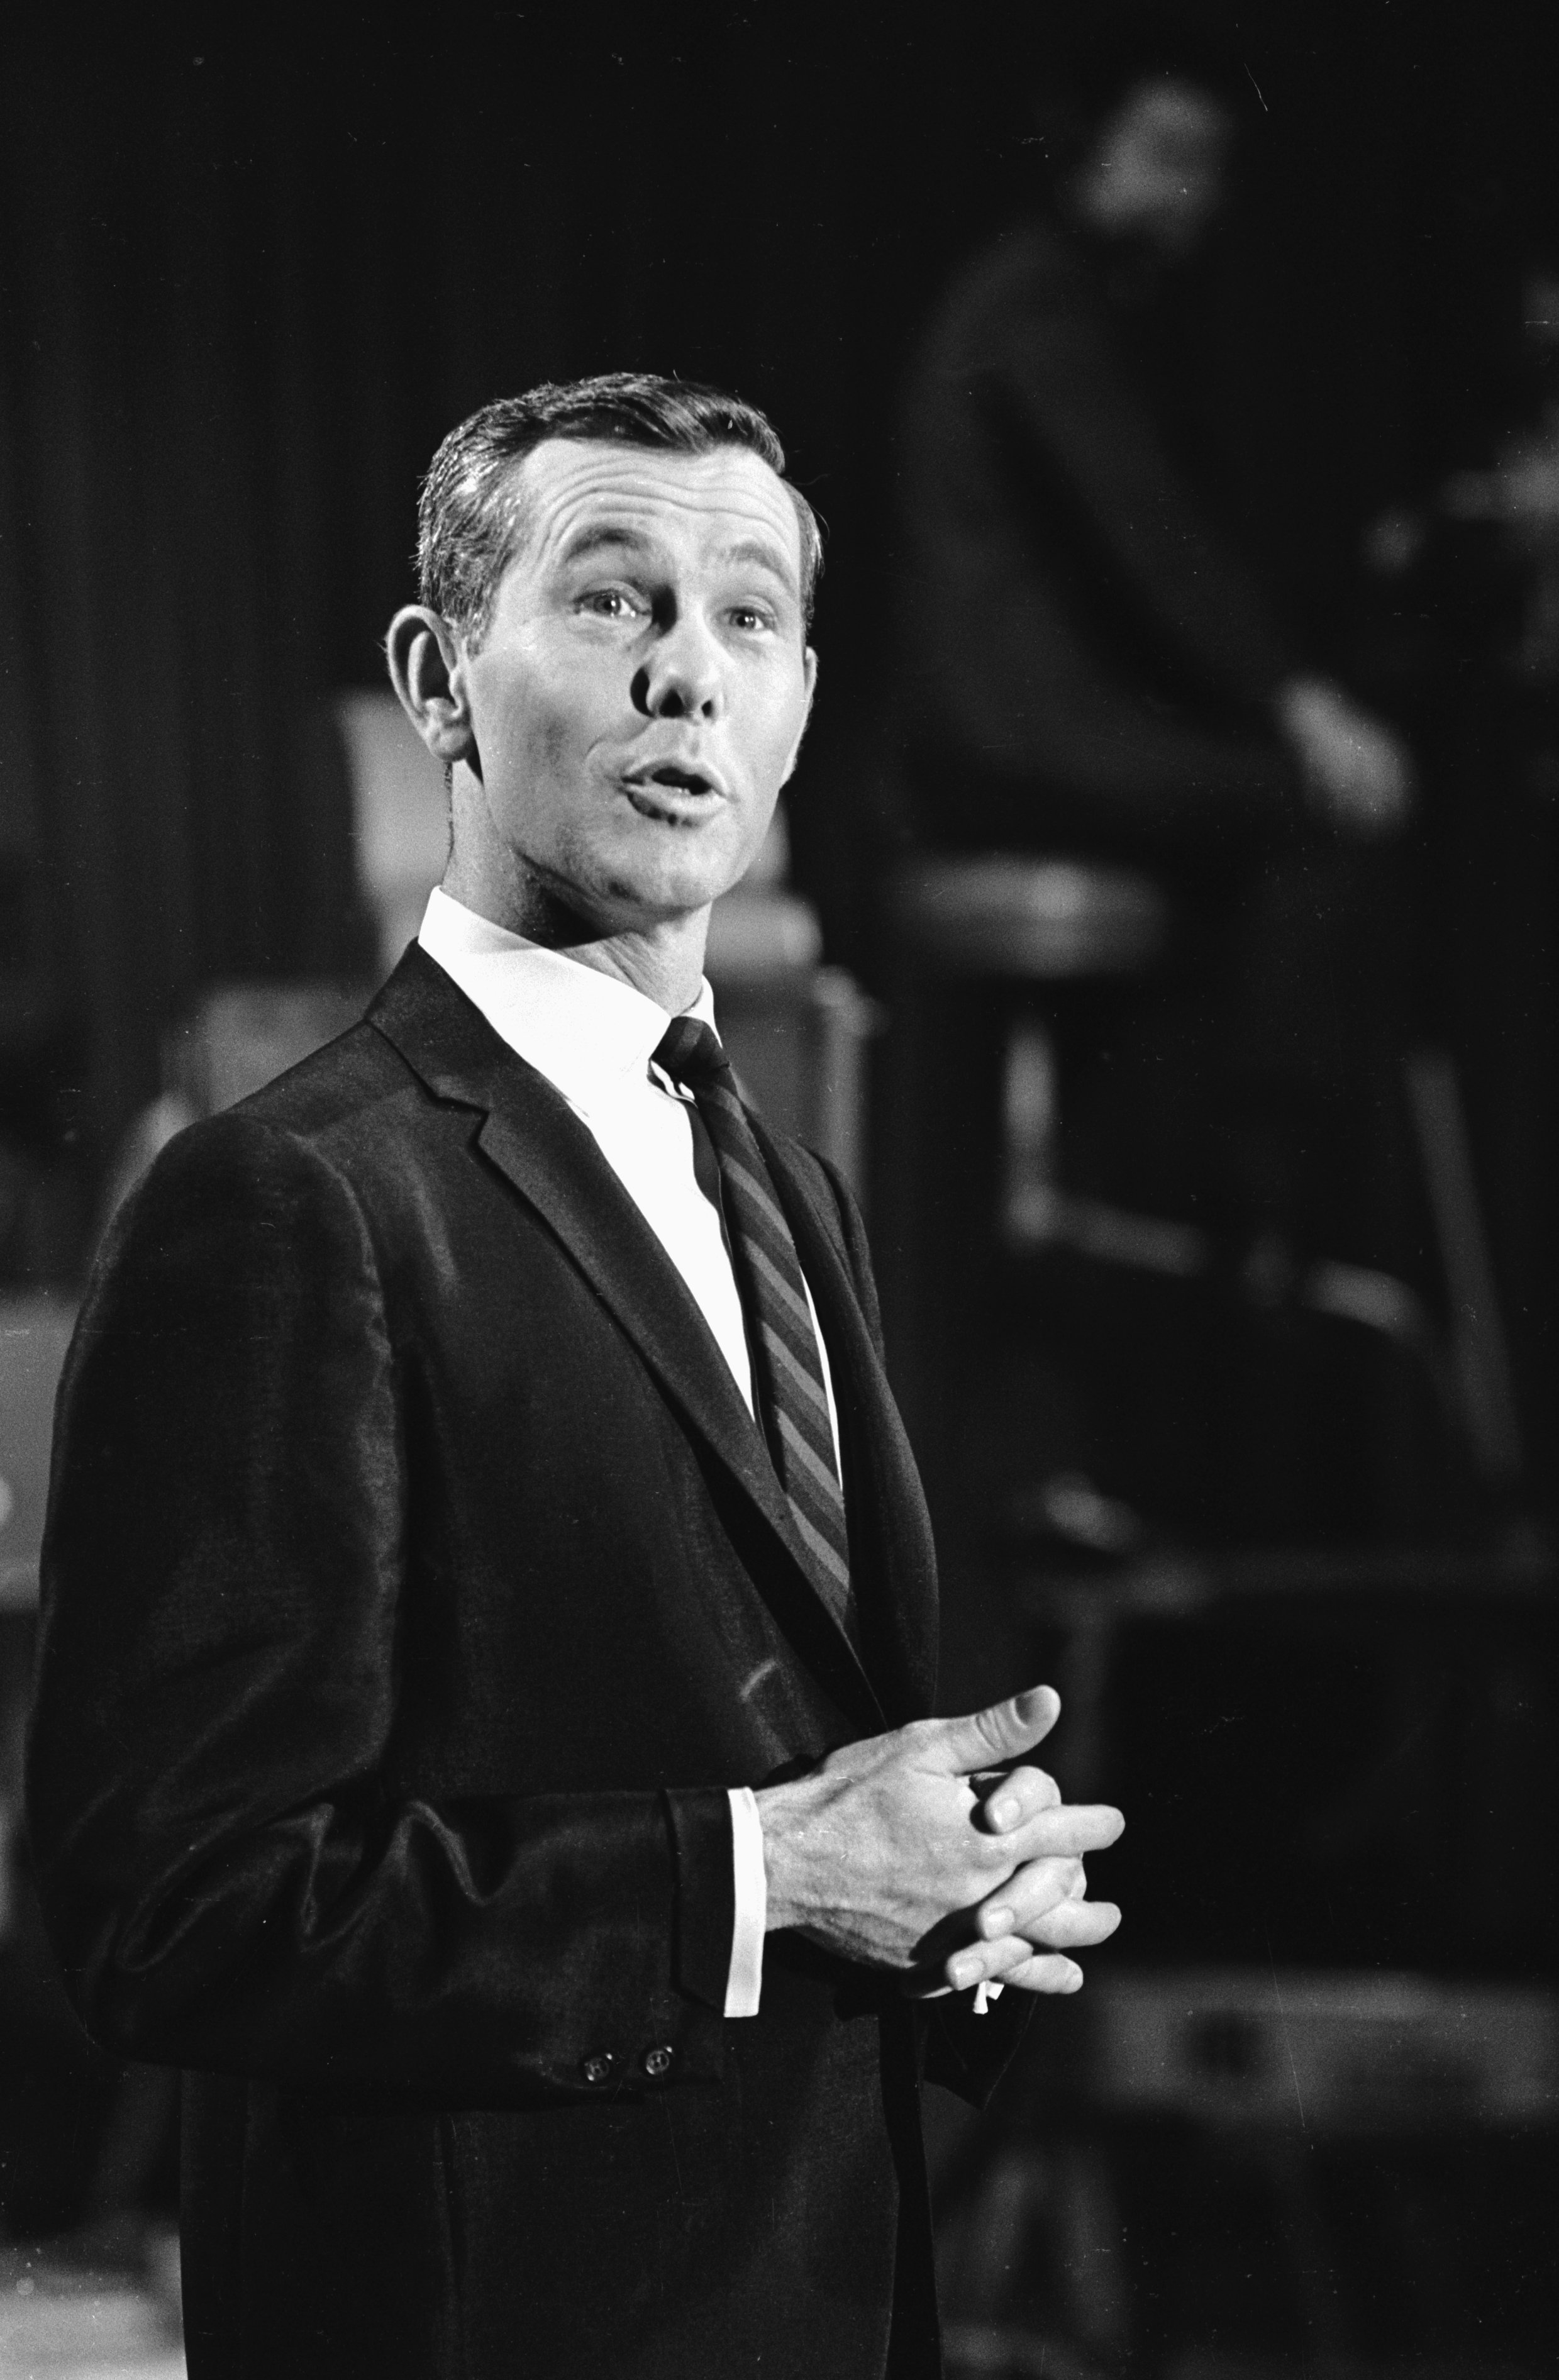 Johnny Carson, star of NBC's 'Tonight' show, December 1964 | Photo: GettyImages